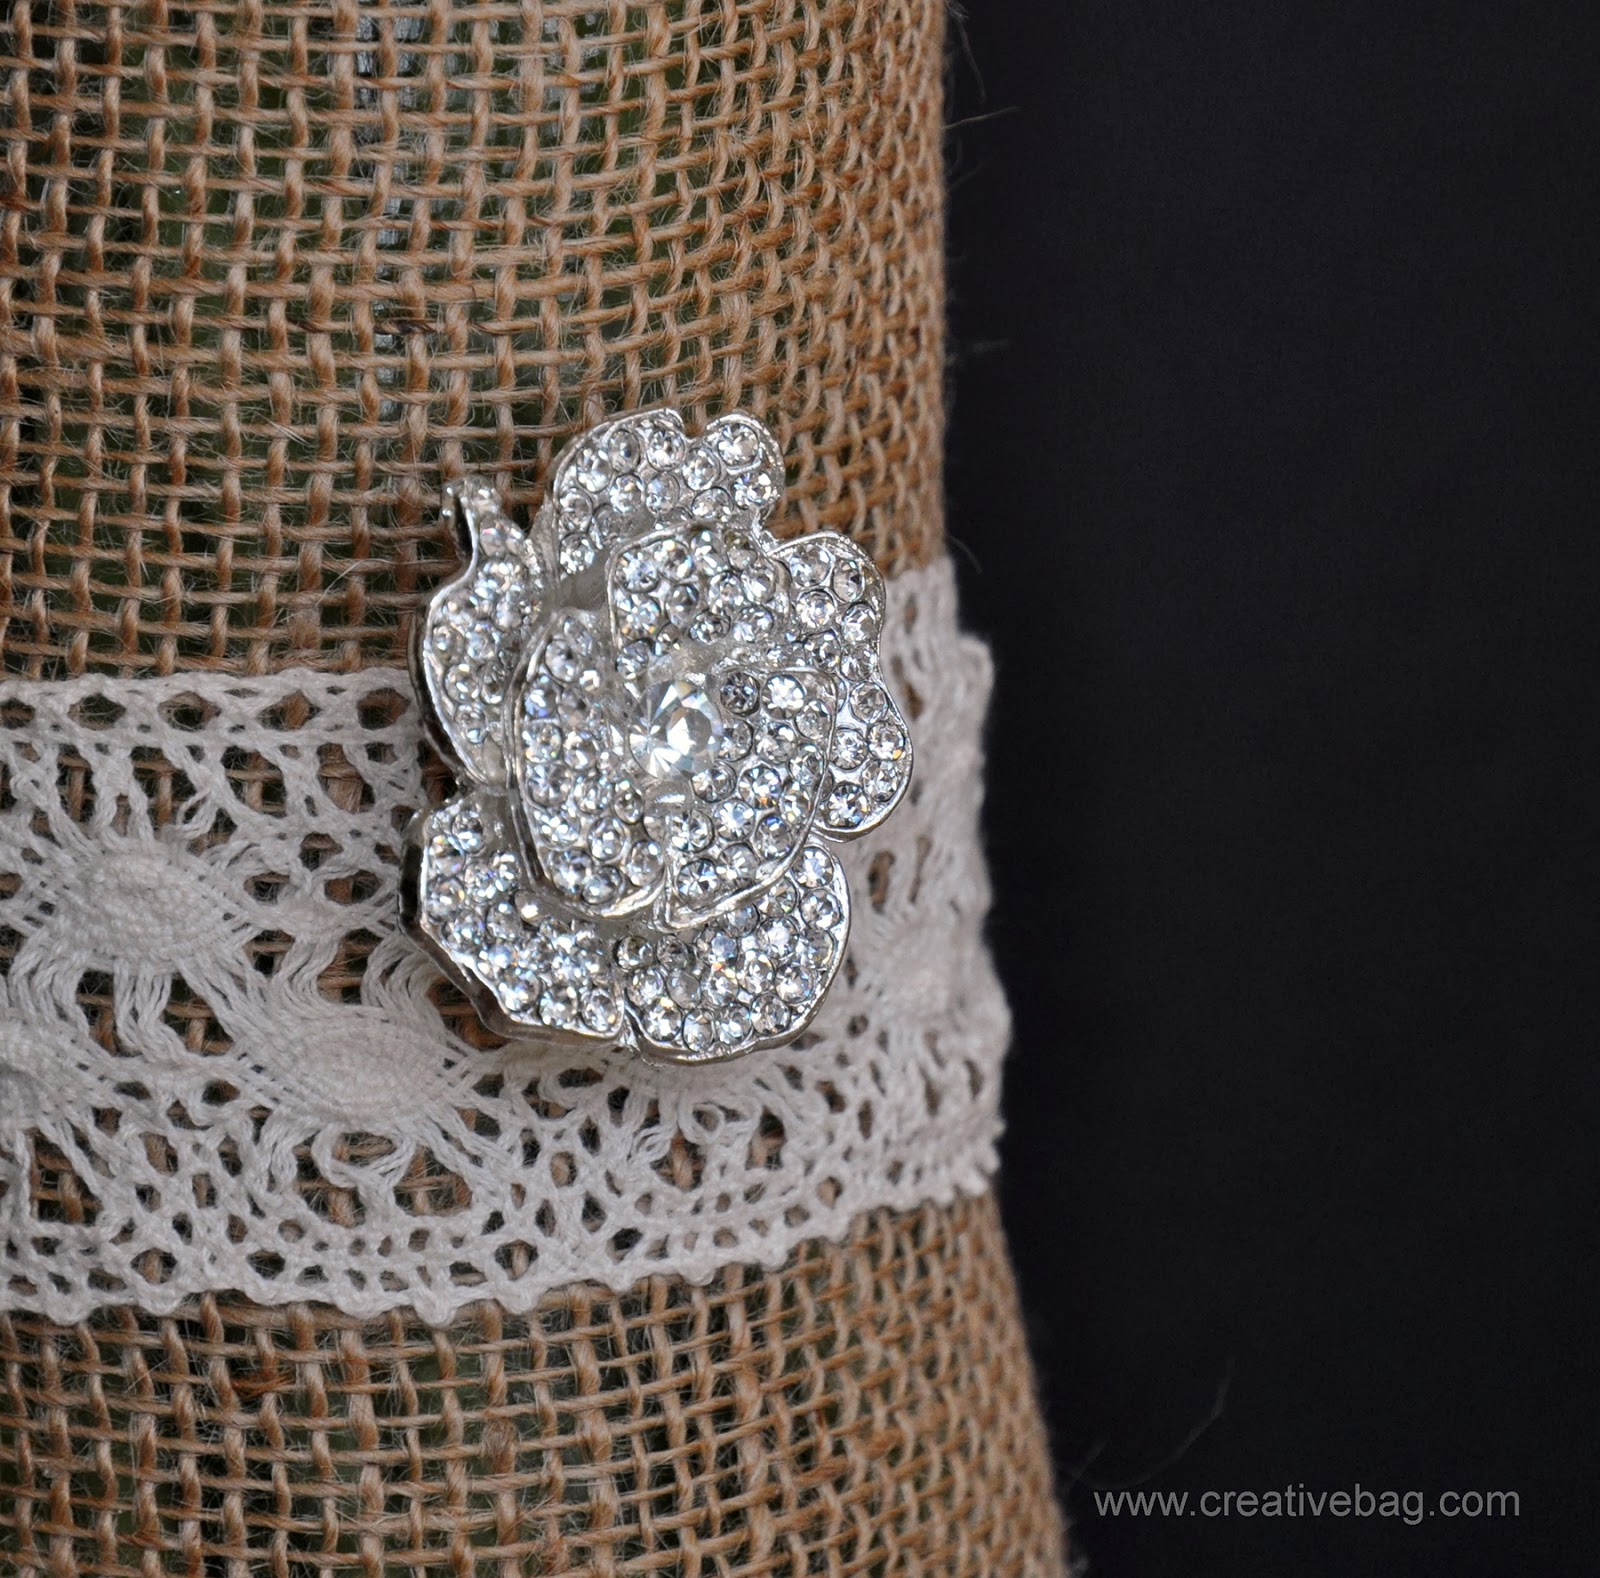 rhinestone brooches and buckles | creativebag.com